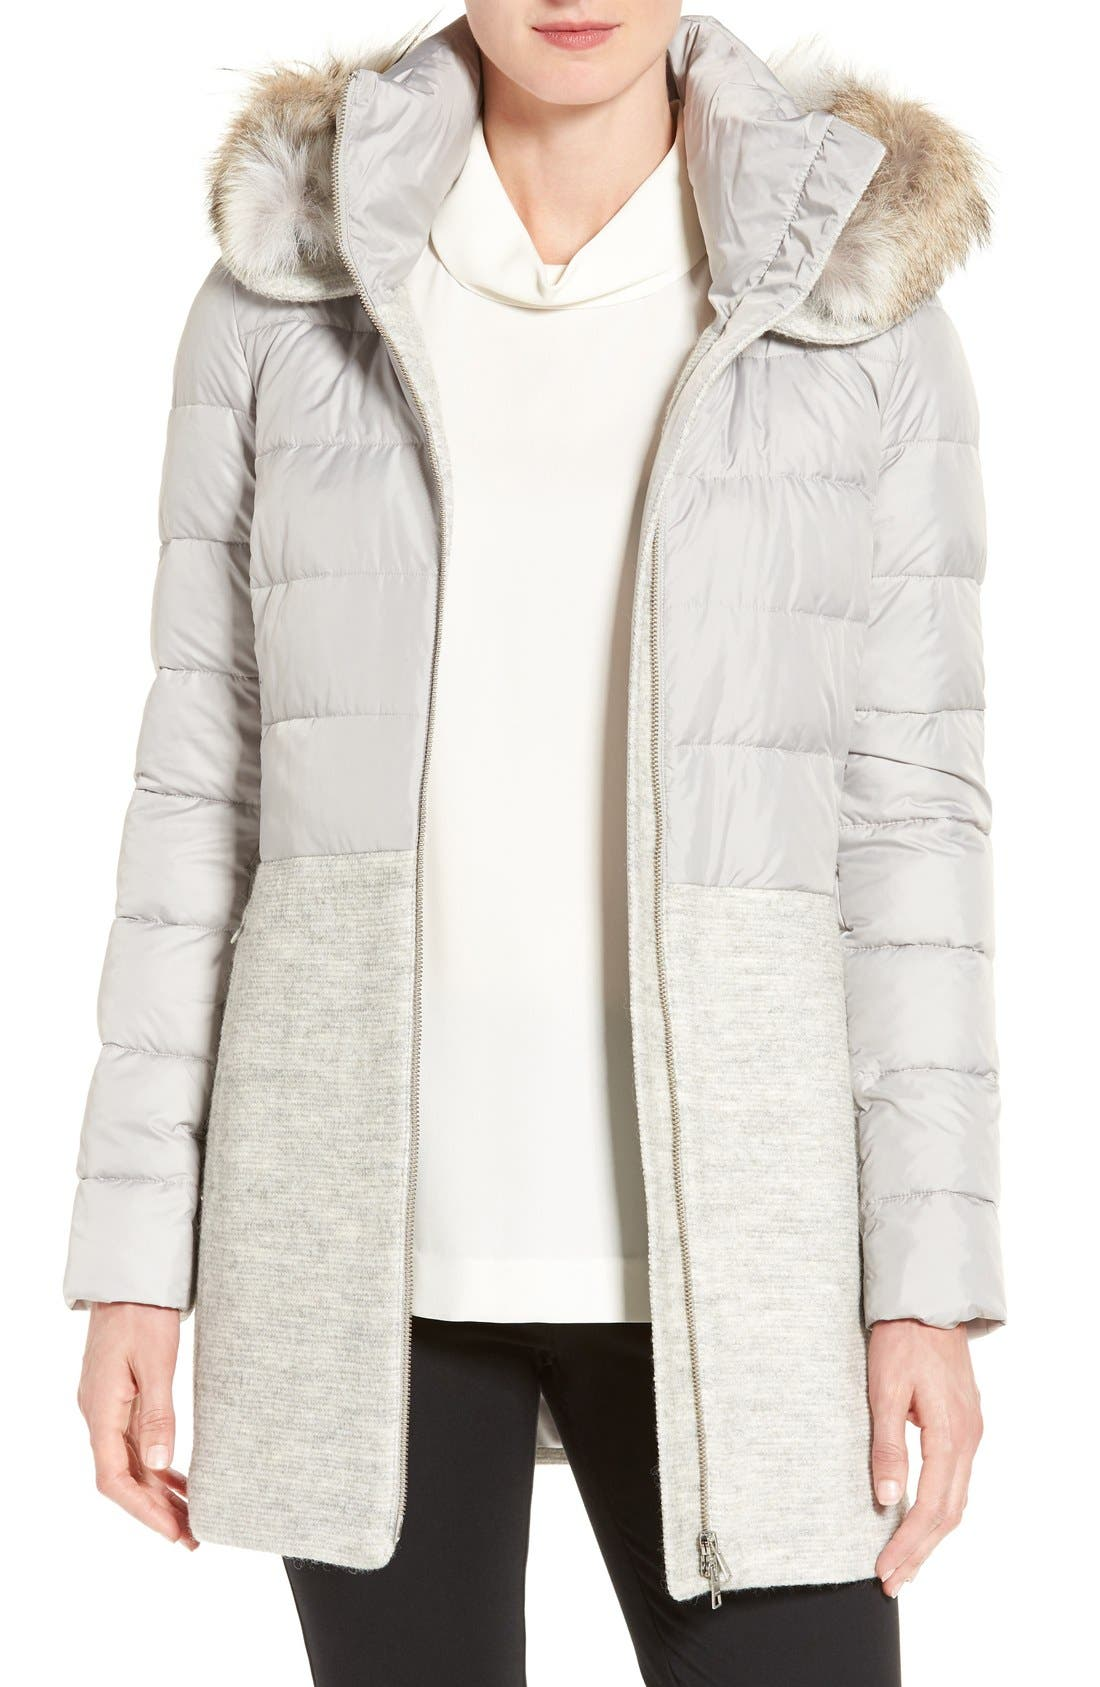 Main Image - Soia & Kyo Mixed Media Quilted Coat with Genuine Coyote Fur Trim Hood